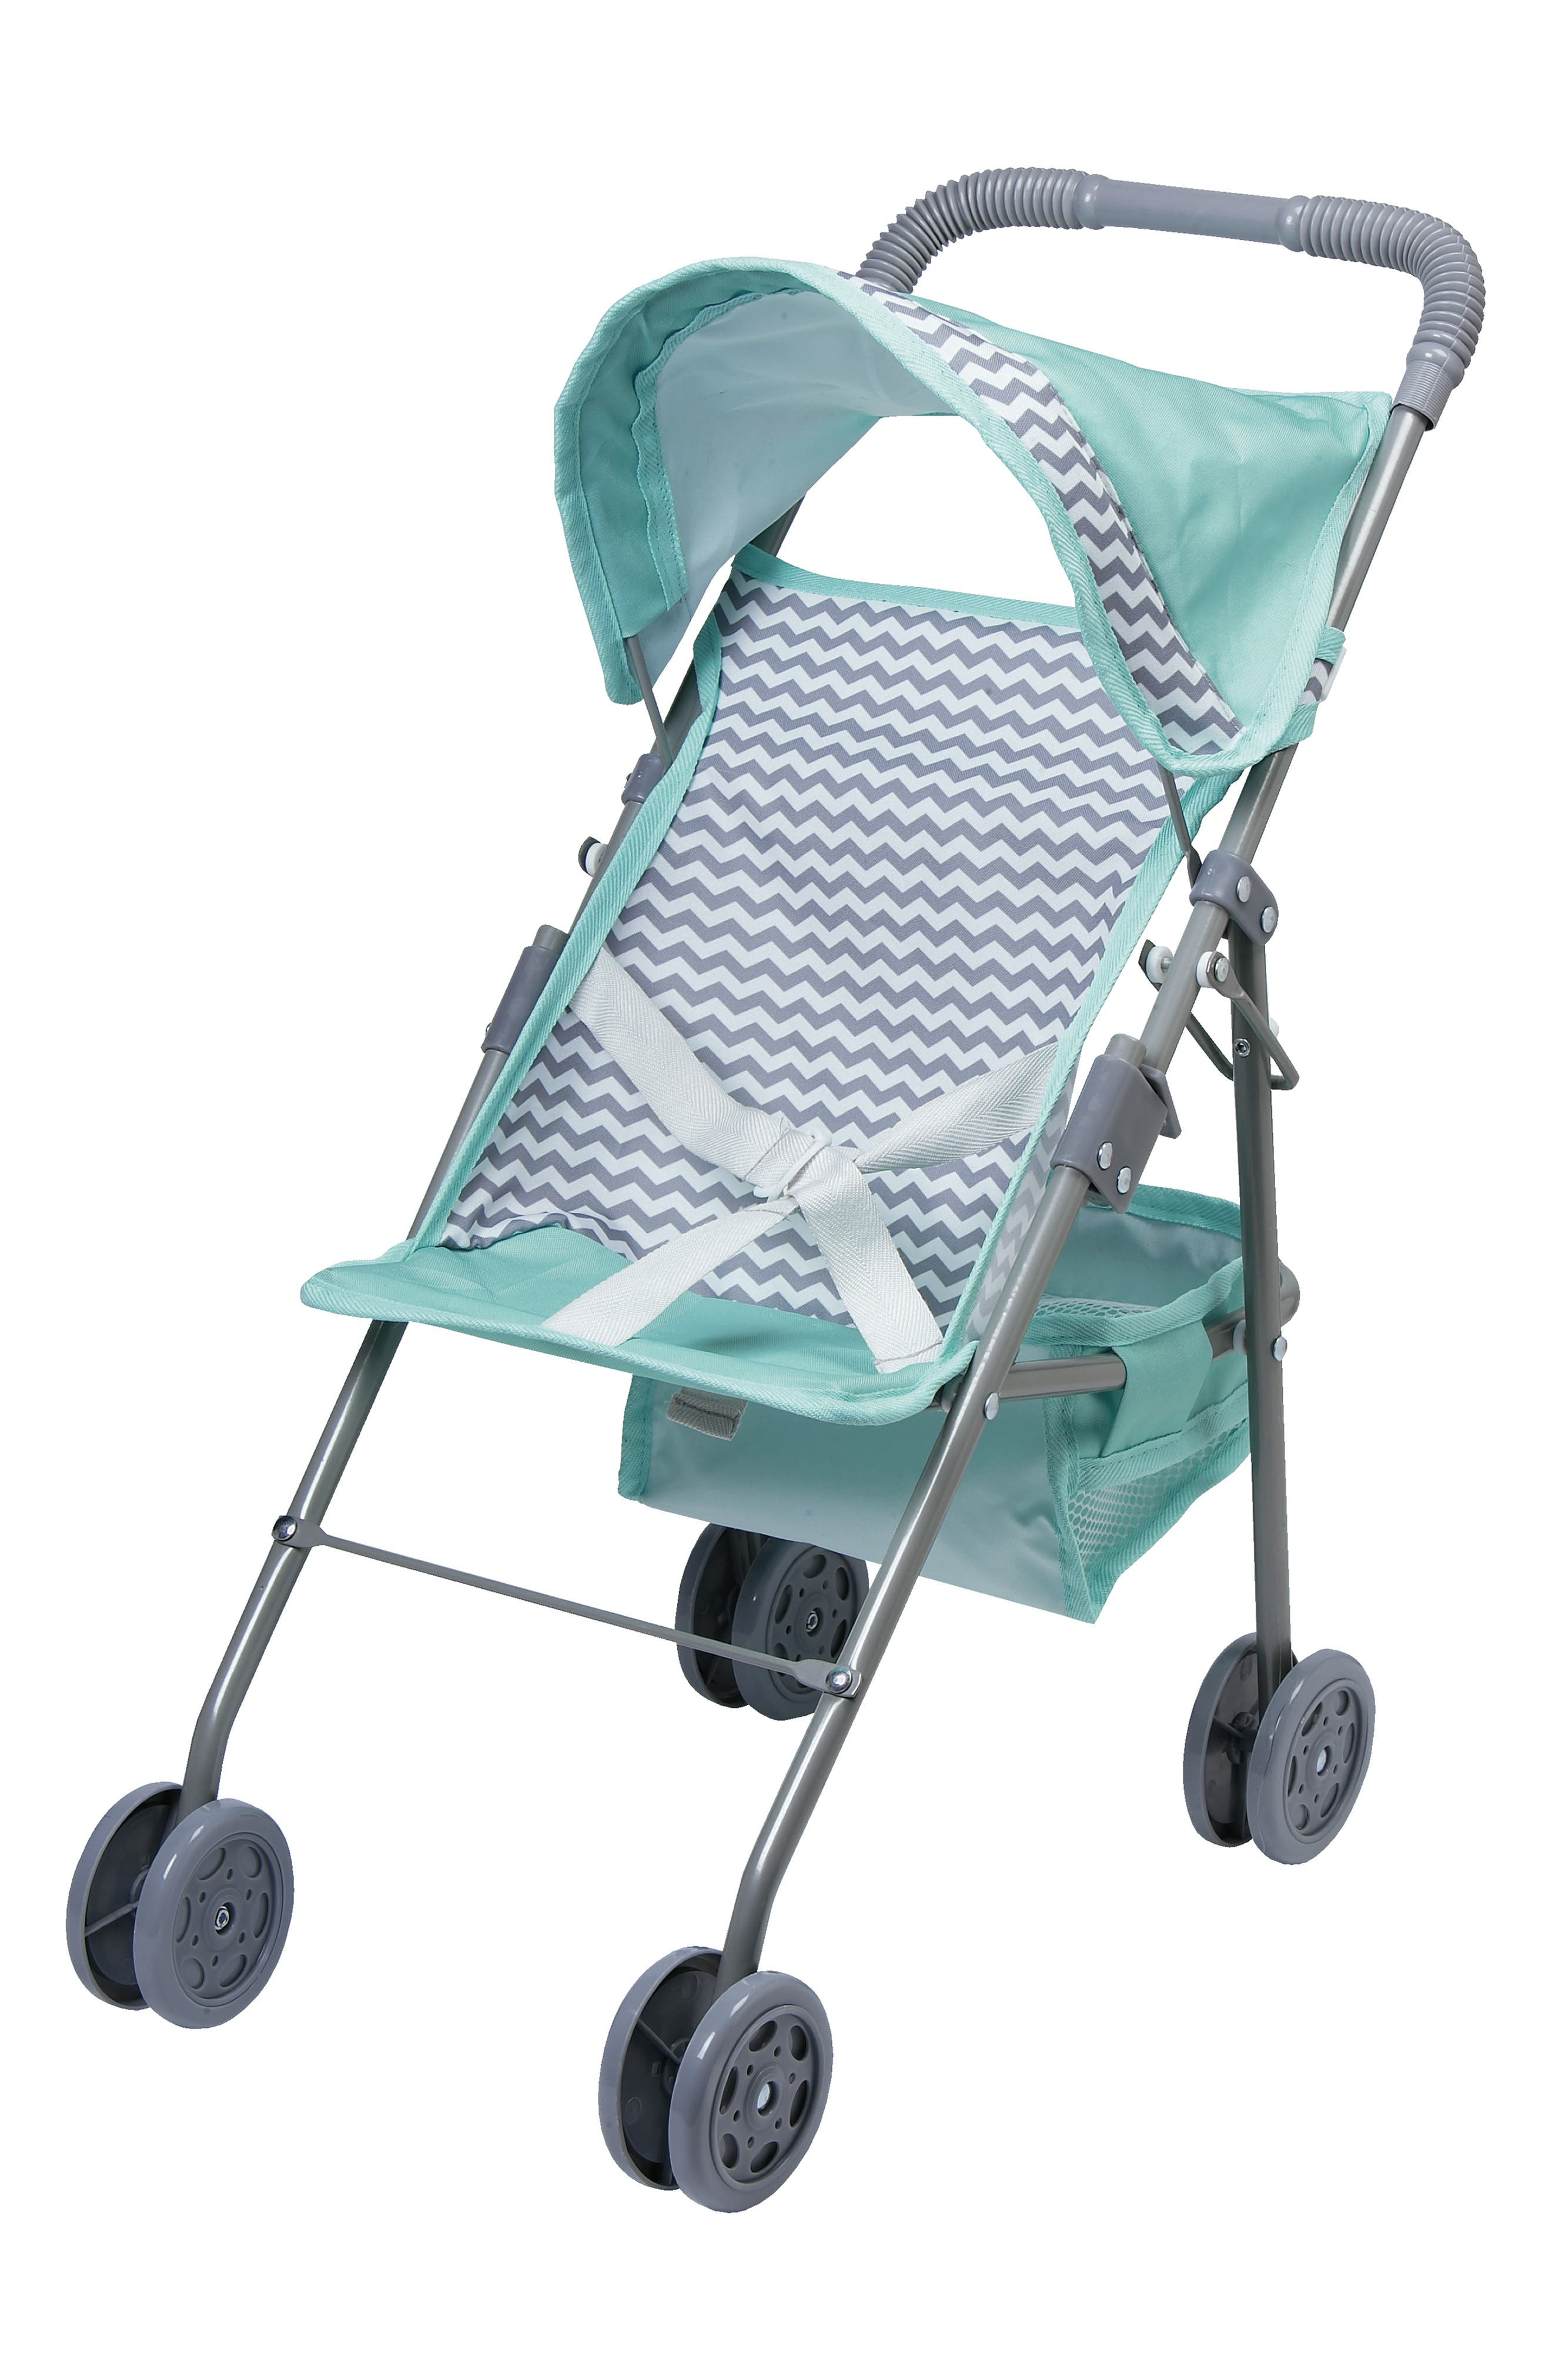 Girls Adora Chevron Patterned Medium Doll Umbrella Stroller